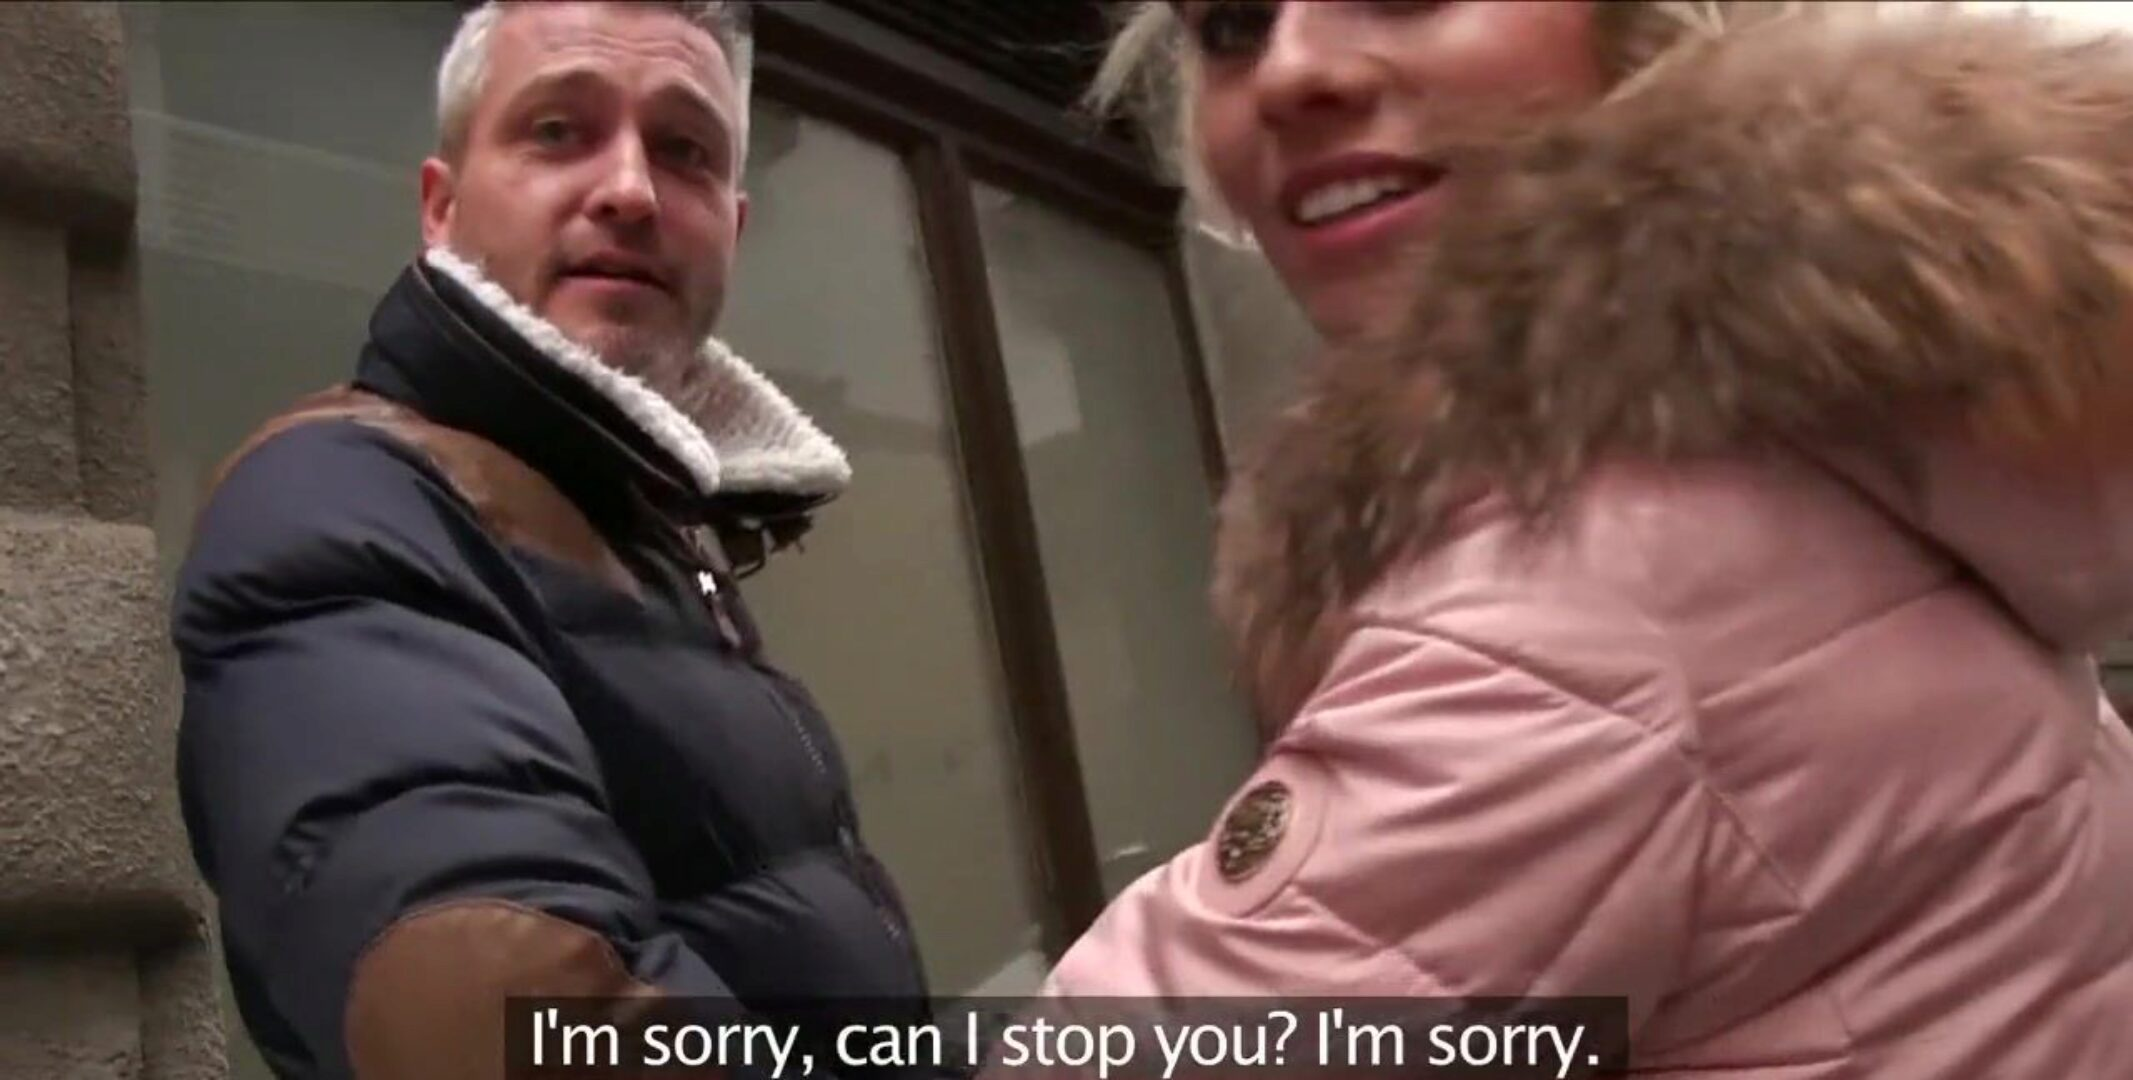 Public Agent Cheating Wife With Short Blonde Hair Fucks for Cash - Free Porn Videos - YouPorn Watch Public Agent Cheating wife with short golden-haired hair copulates for money online on YouPorn.com. YouPorn is the thickest Amateur porno clip site with the greatest selection of free high quality oral sex movies Enjoy our HD porno episodes on any instrument of your choosing!